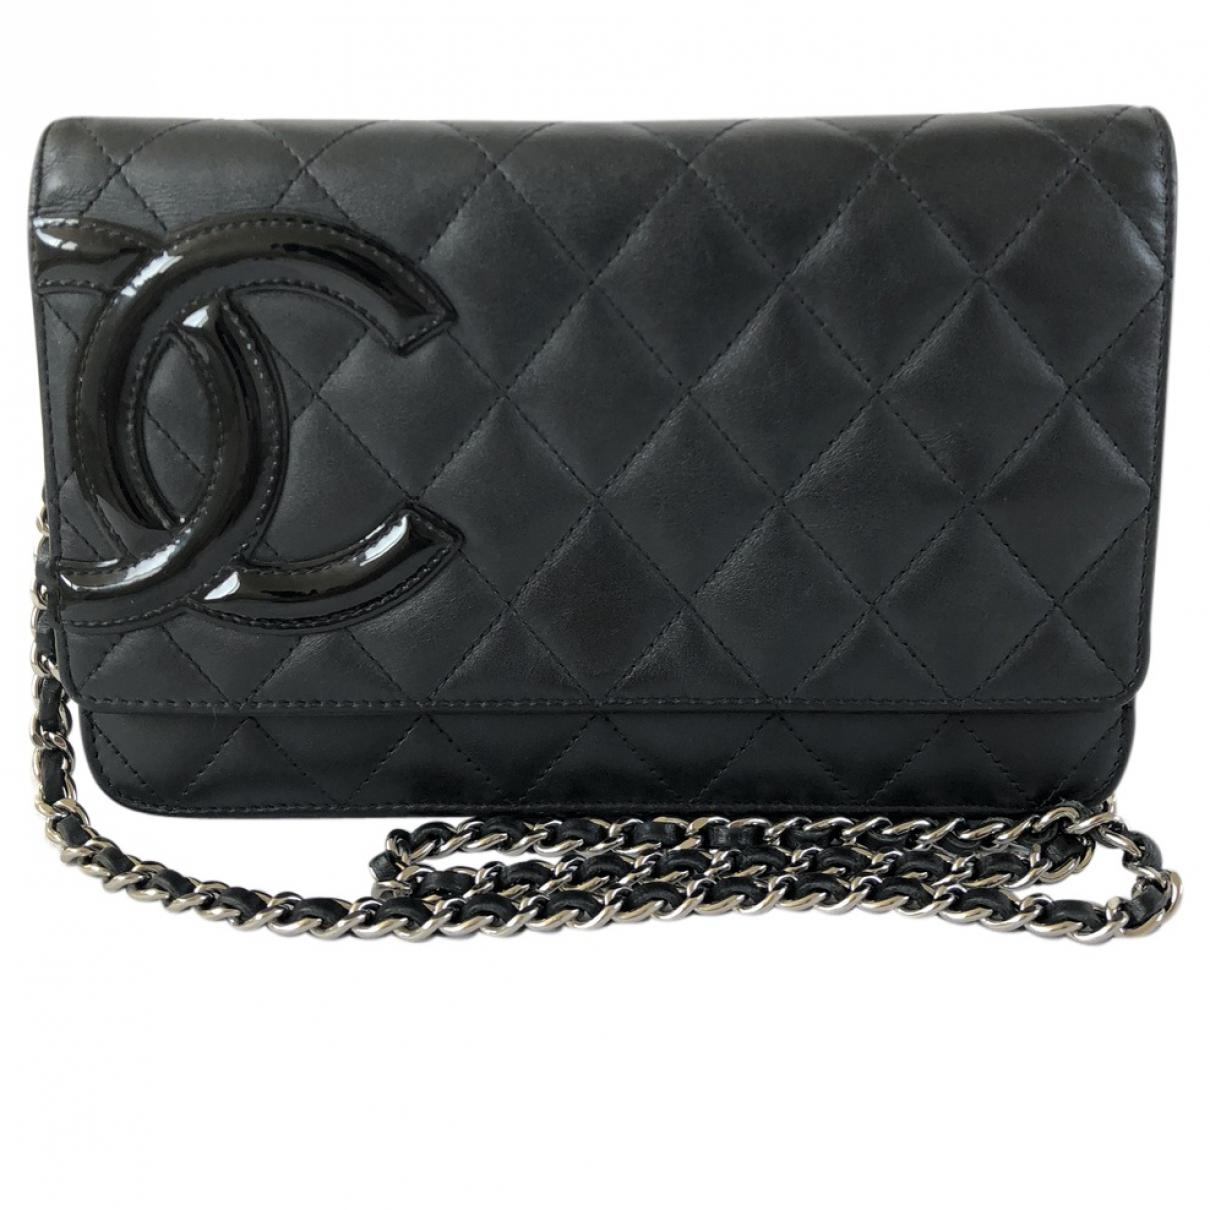 f4b66d69fdc6 Chanel Cambon Leather Clutch Bag in Black - Lyst